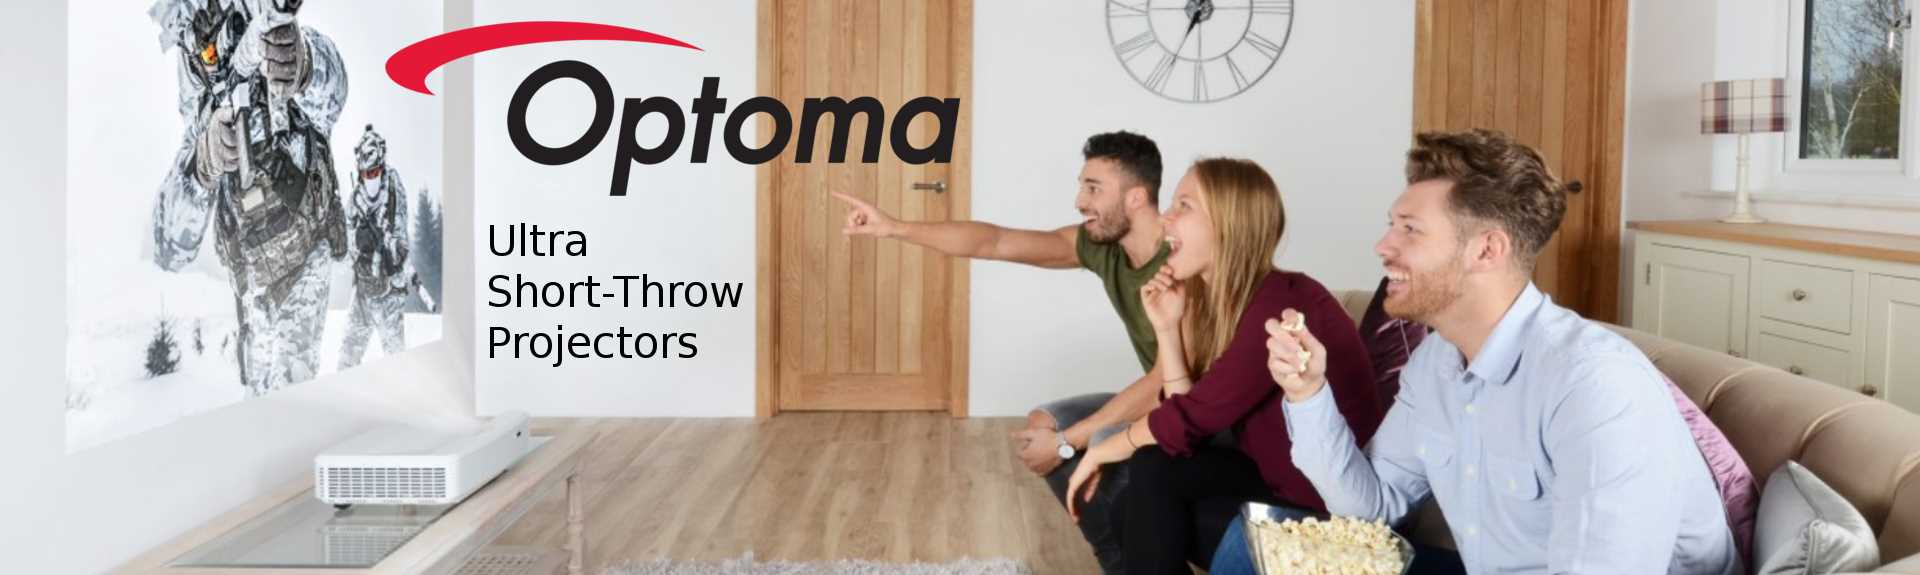 Optoma UltraShortThrow